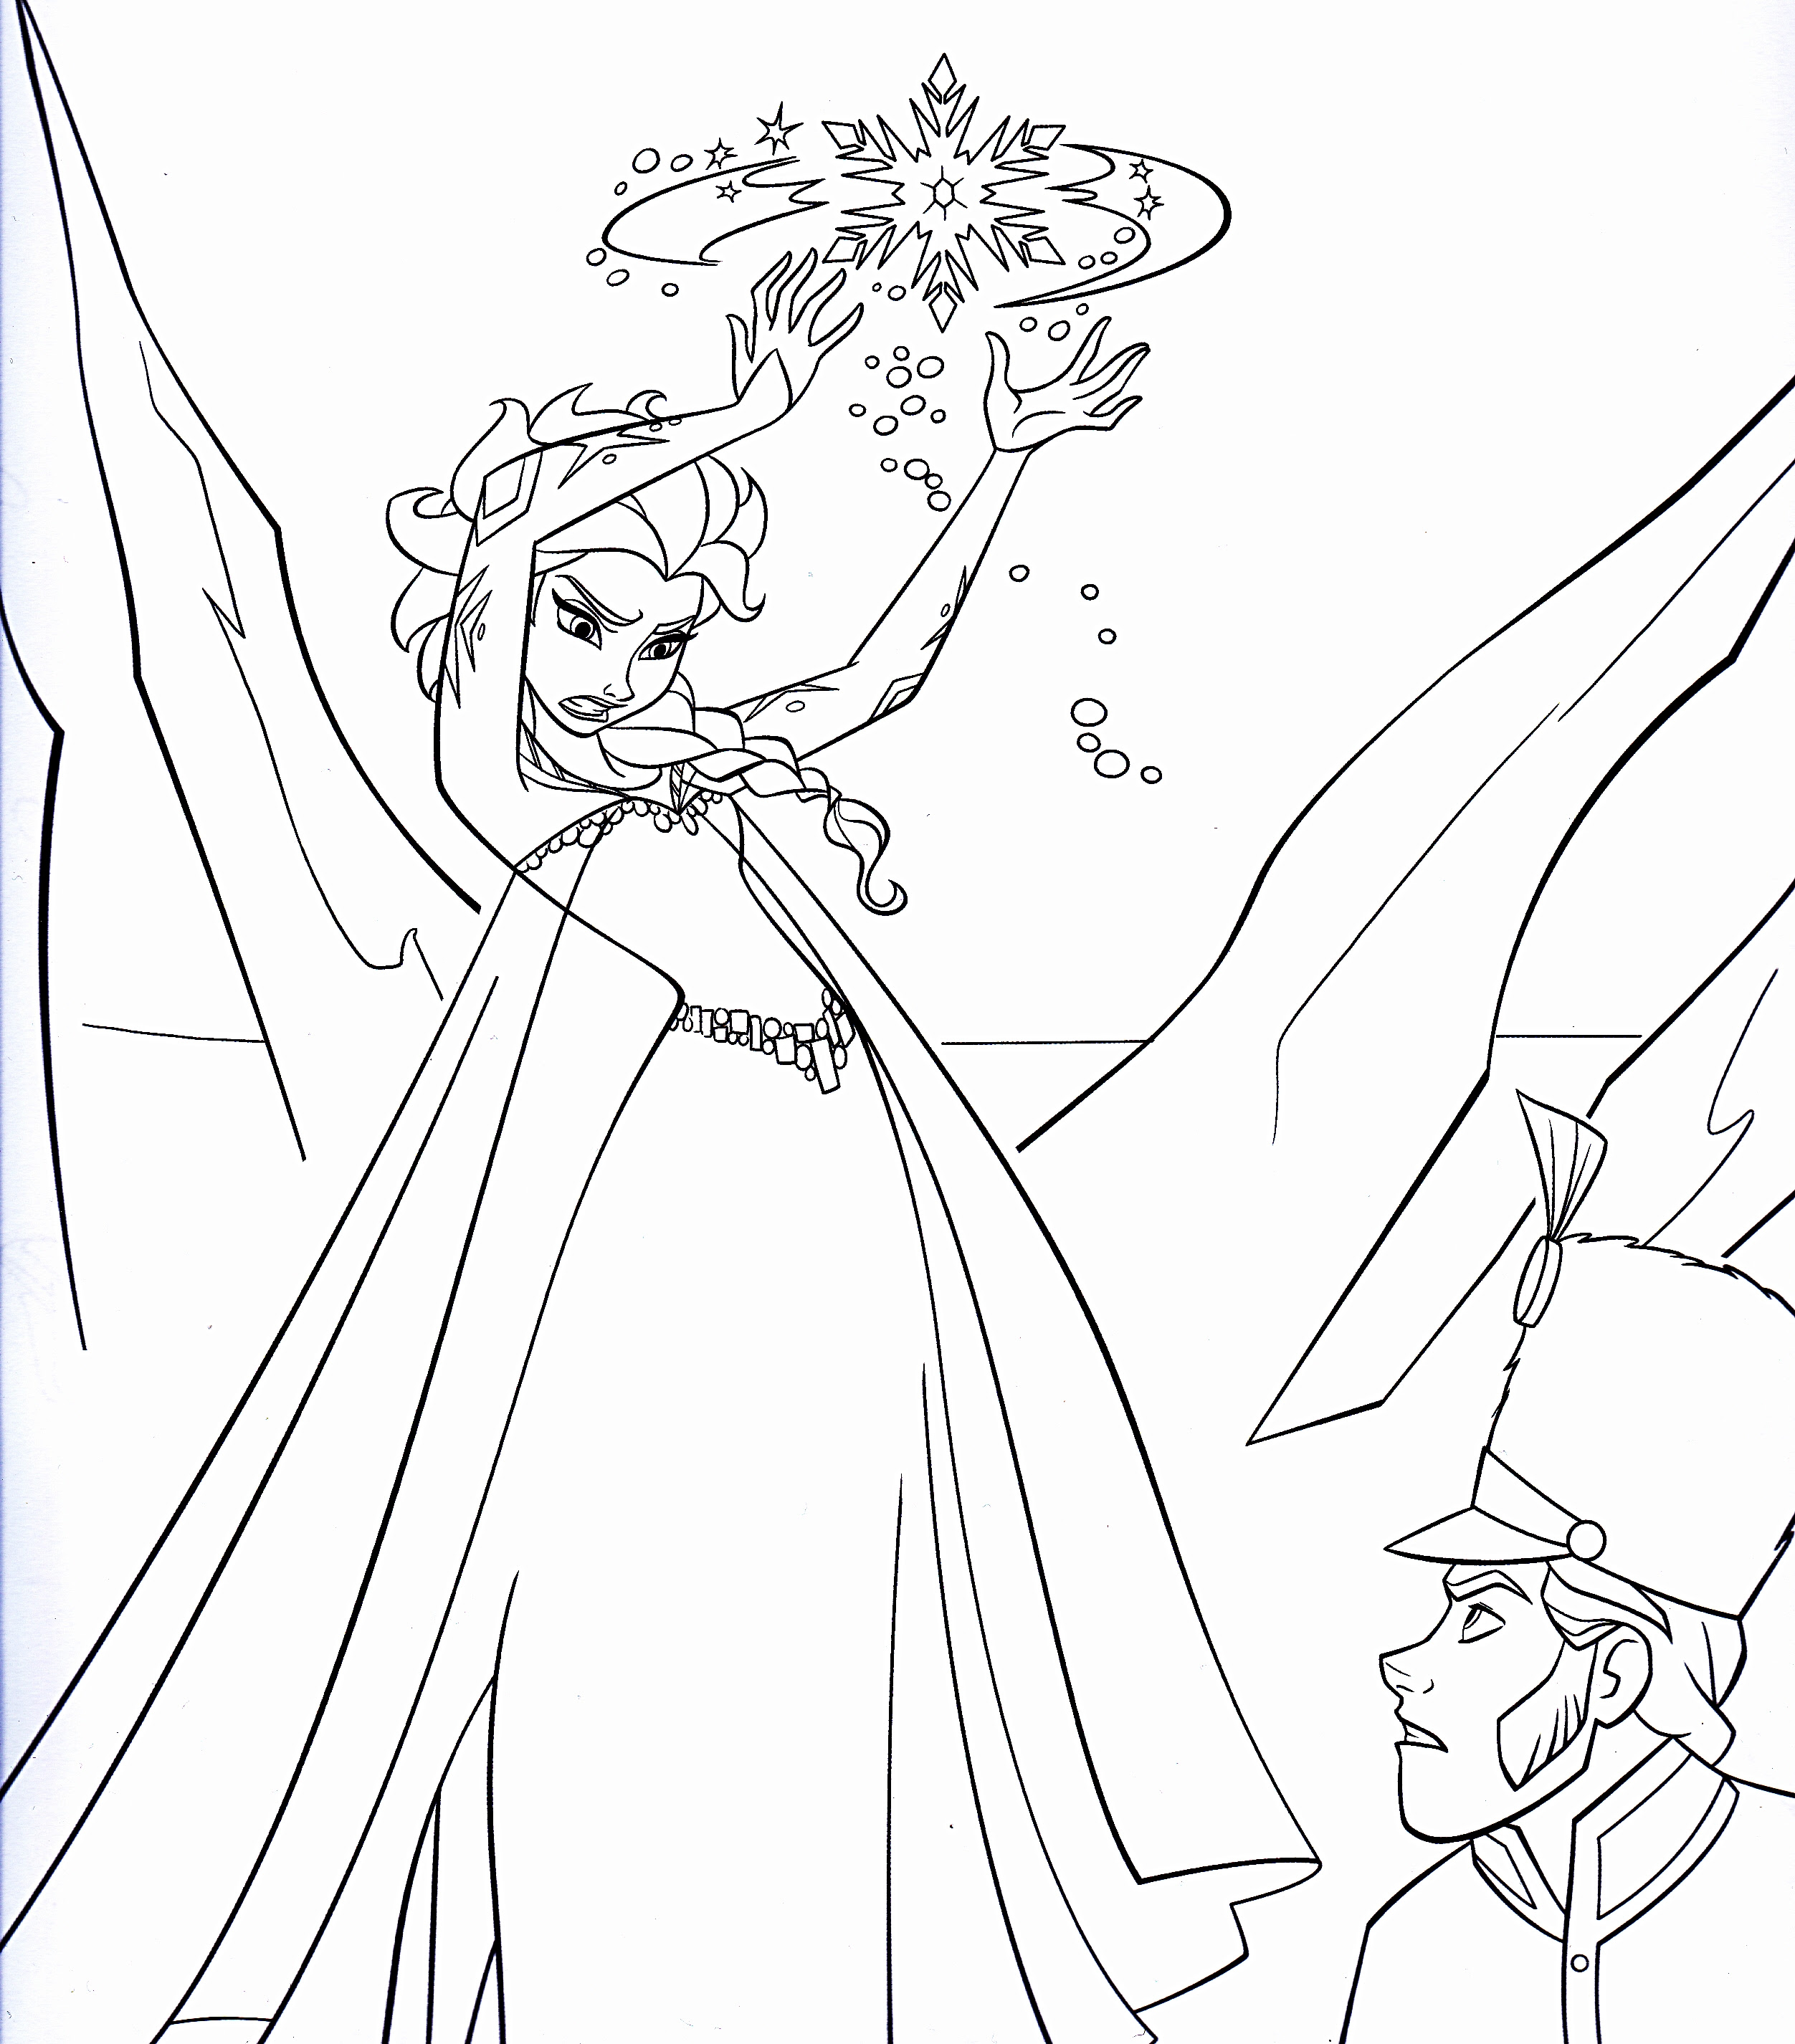 Karakter Walt Disney Gambar Walt Disney Coloring Pages Queen Elsa